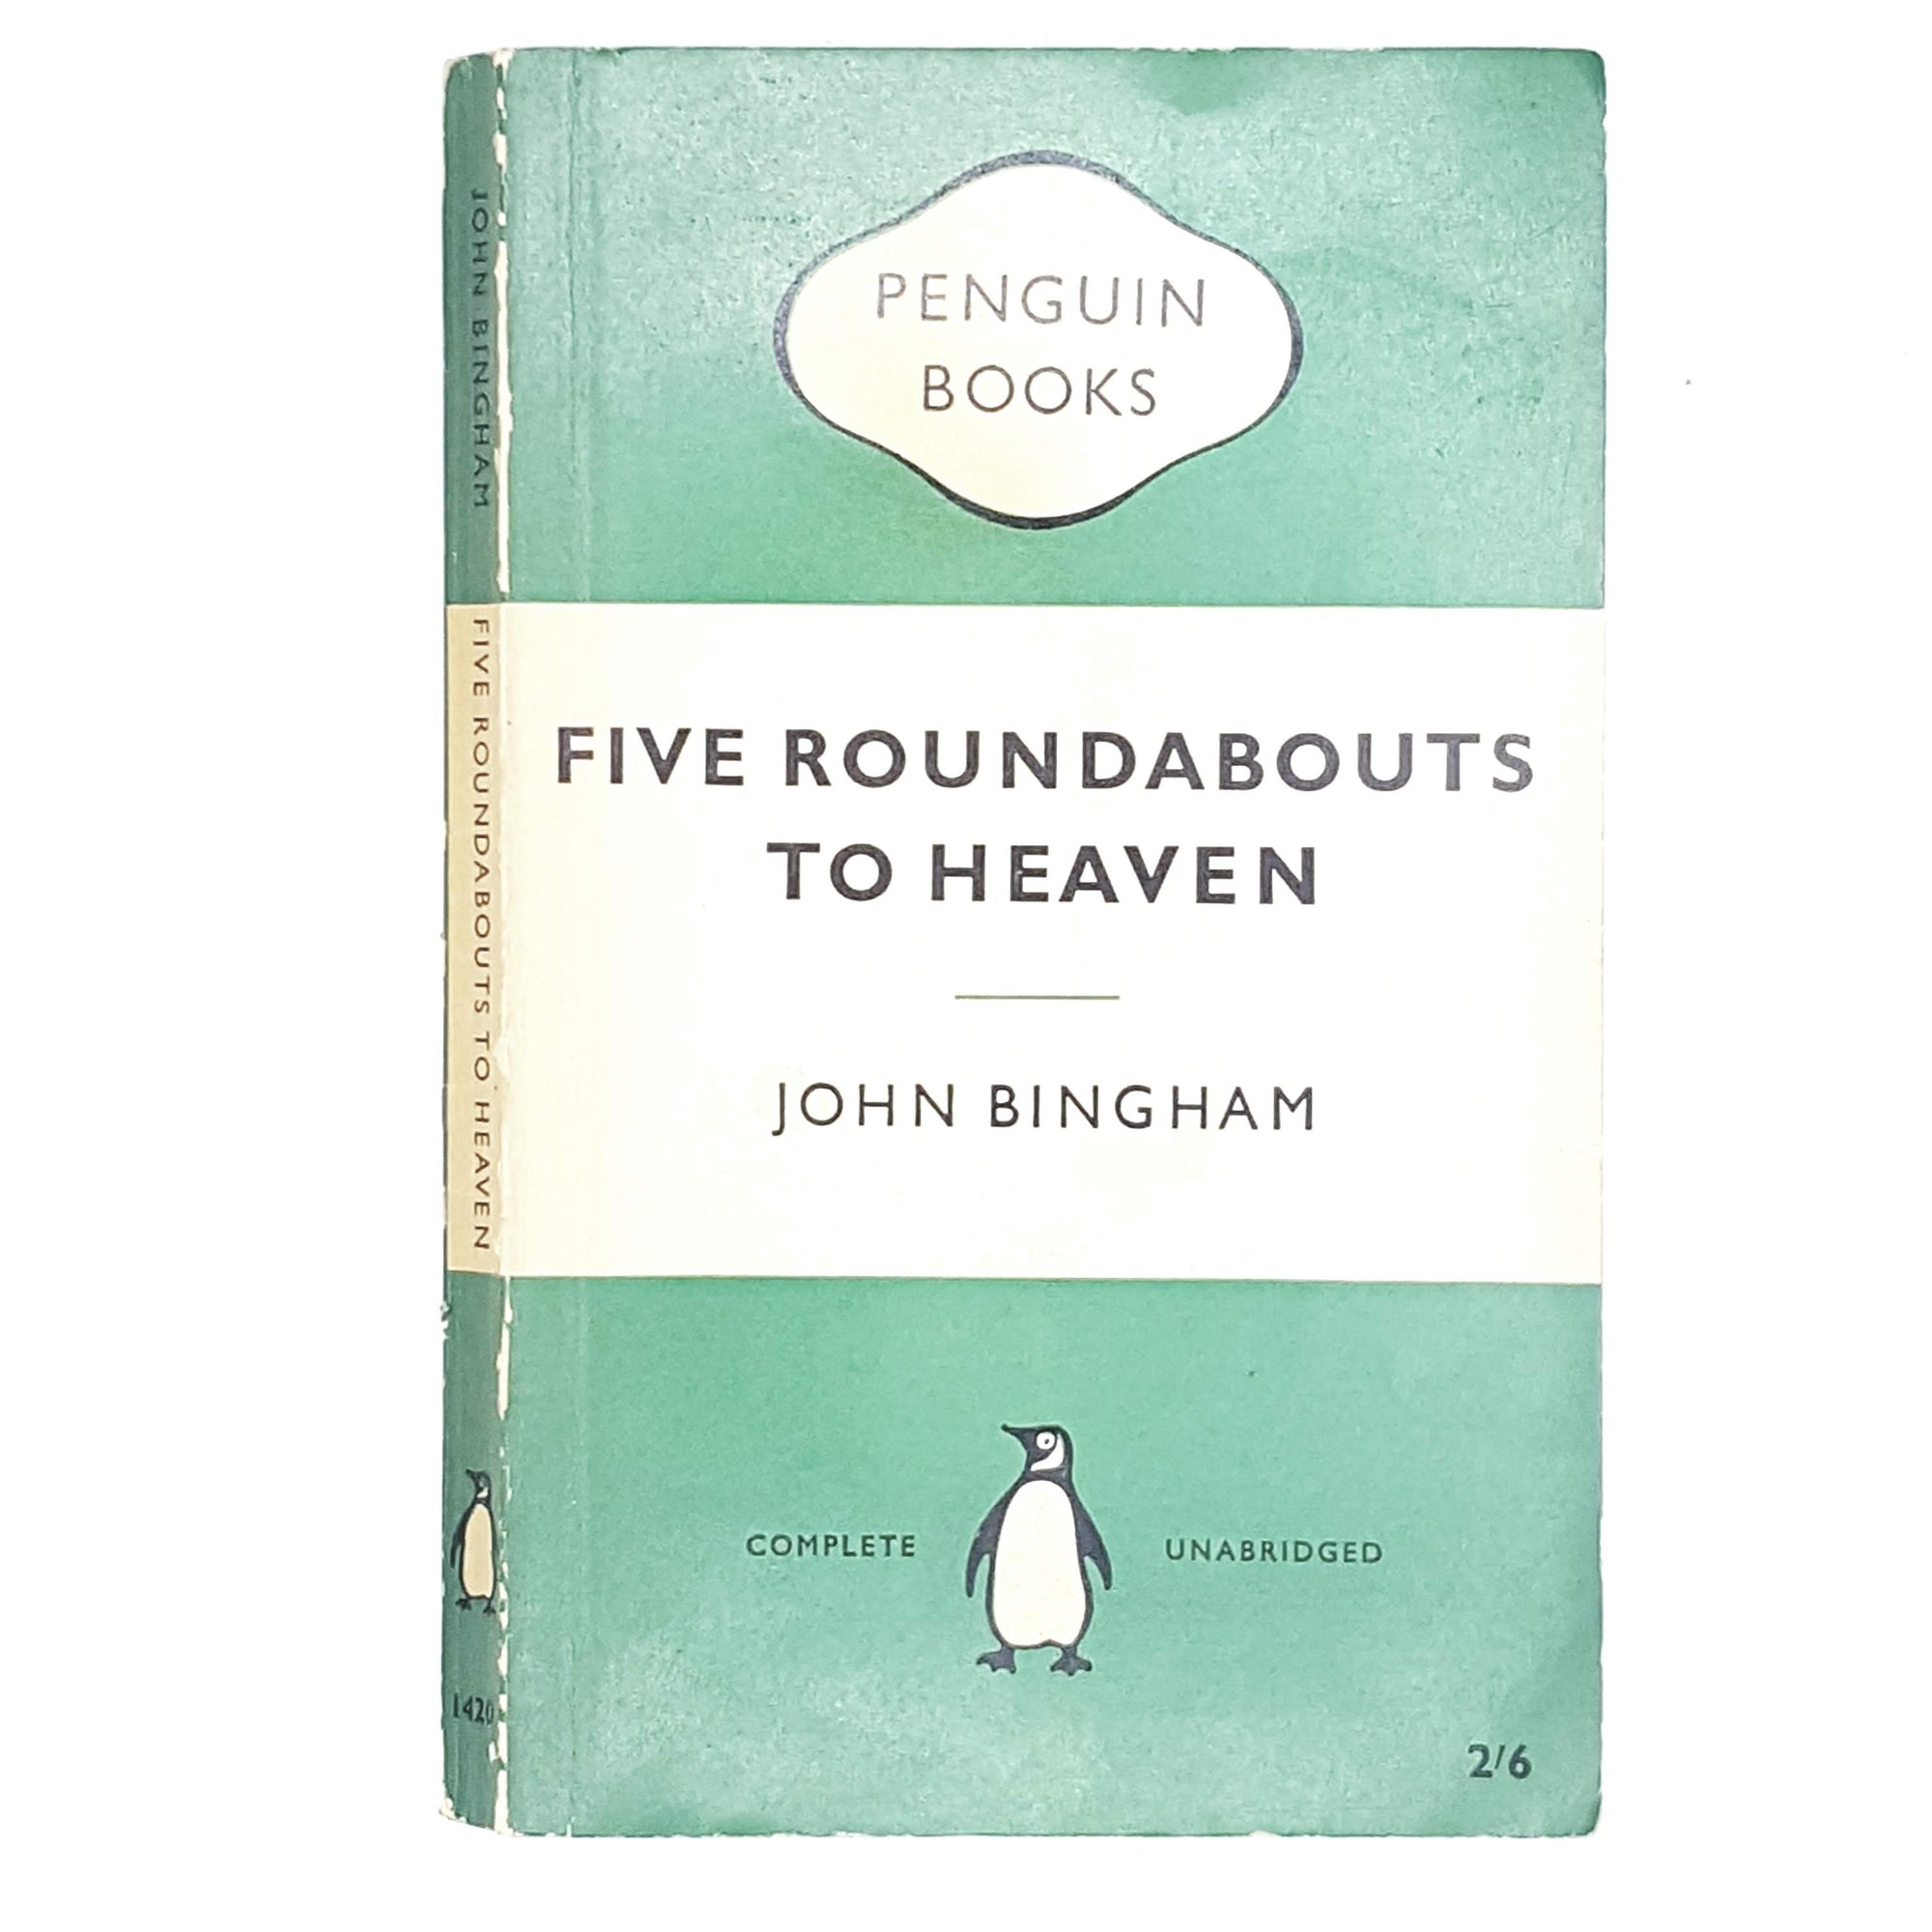 First Edition Vintage Penguin Five Roundabouts to Heaven by John Bingham 1953